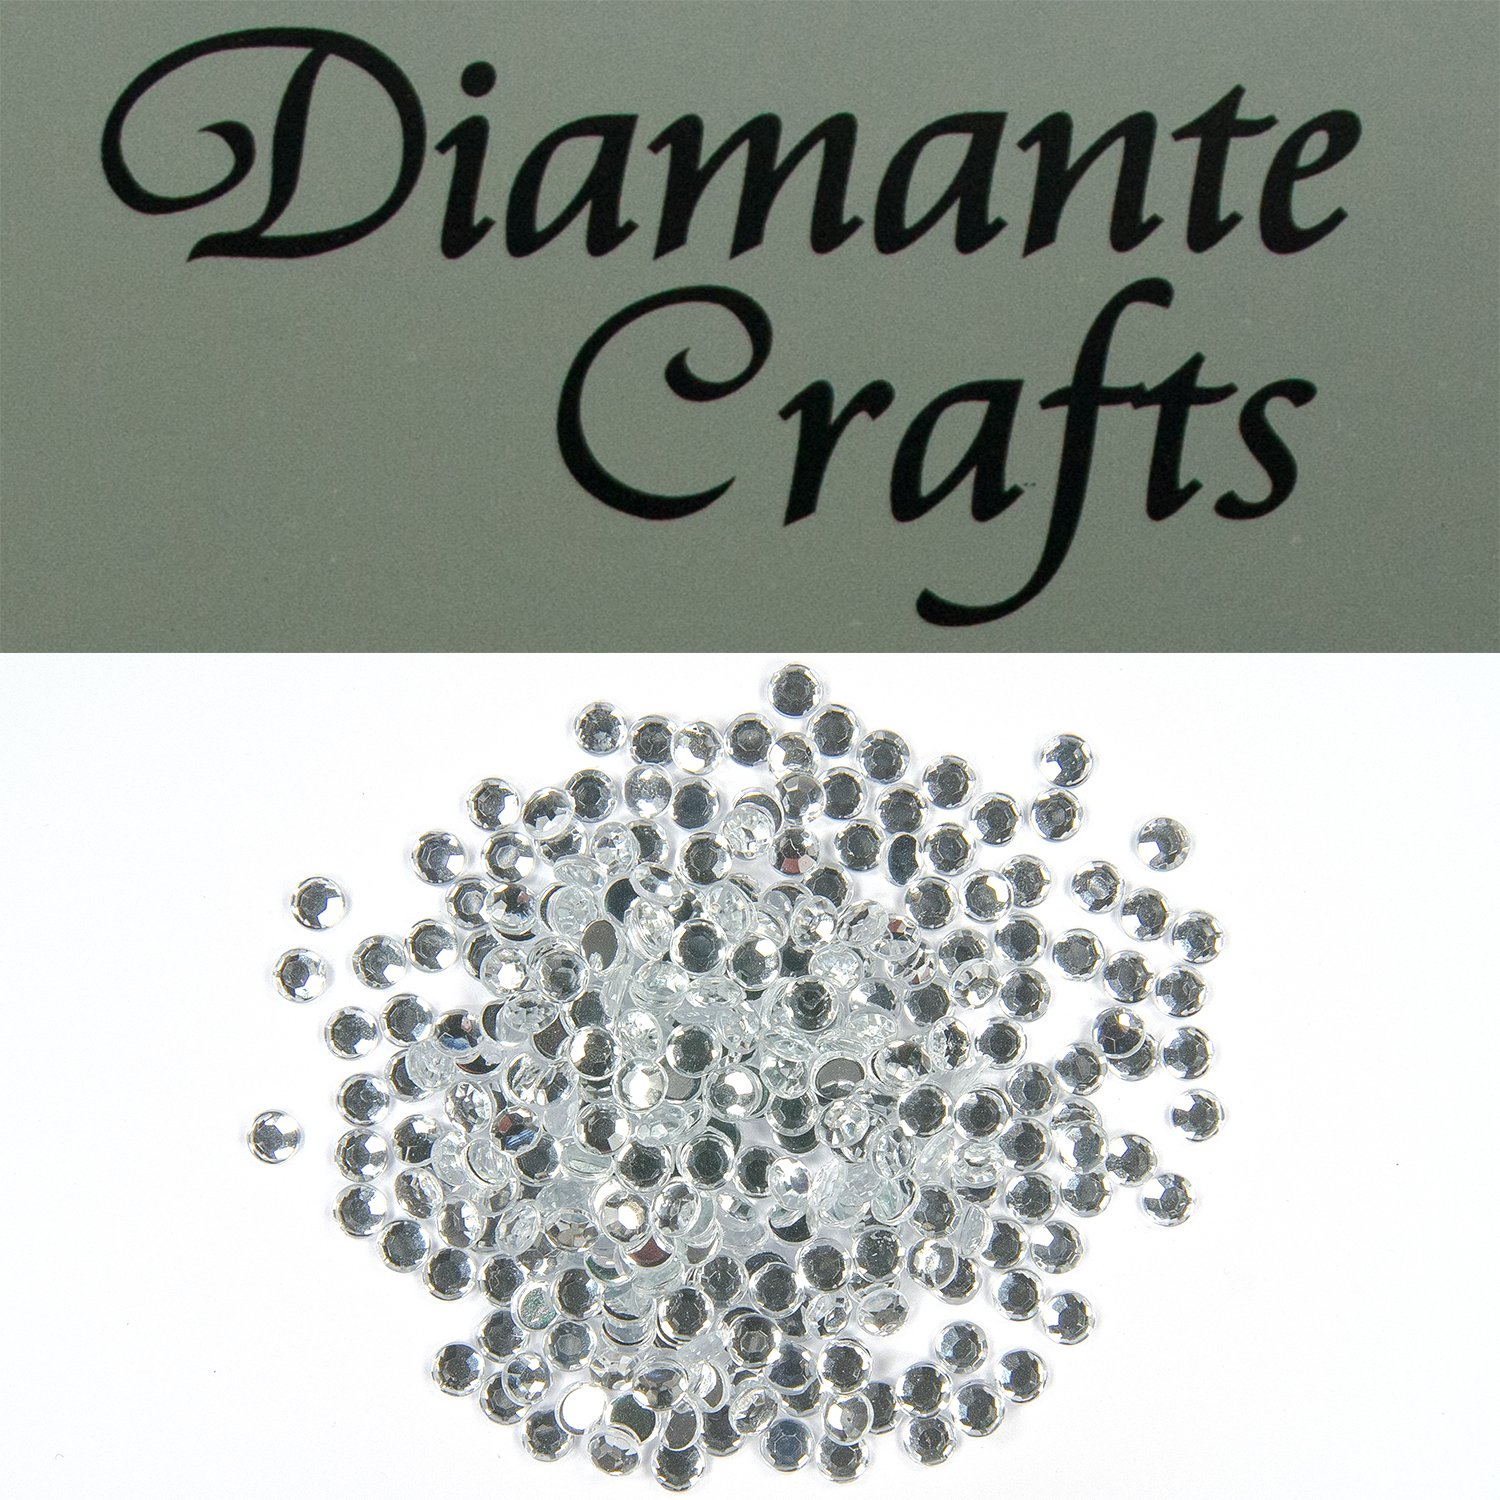 300 x 4mm Clear Round Diamante Loose Flat Back Rhinestone Gems created exclusively for Diamante Crafts